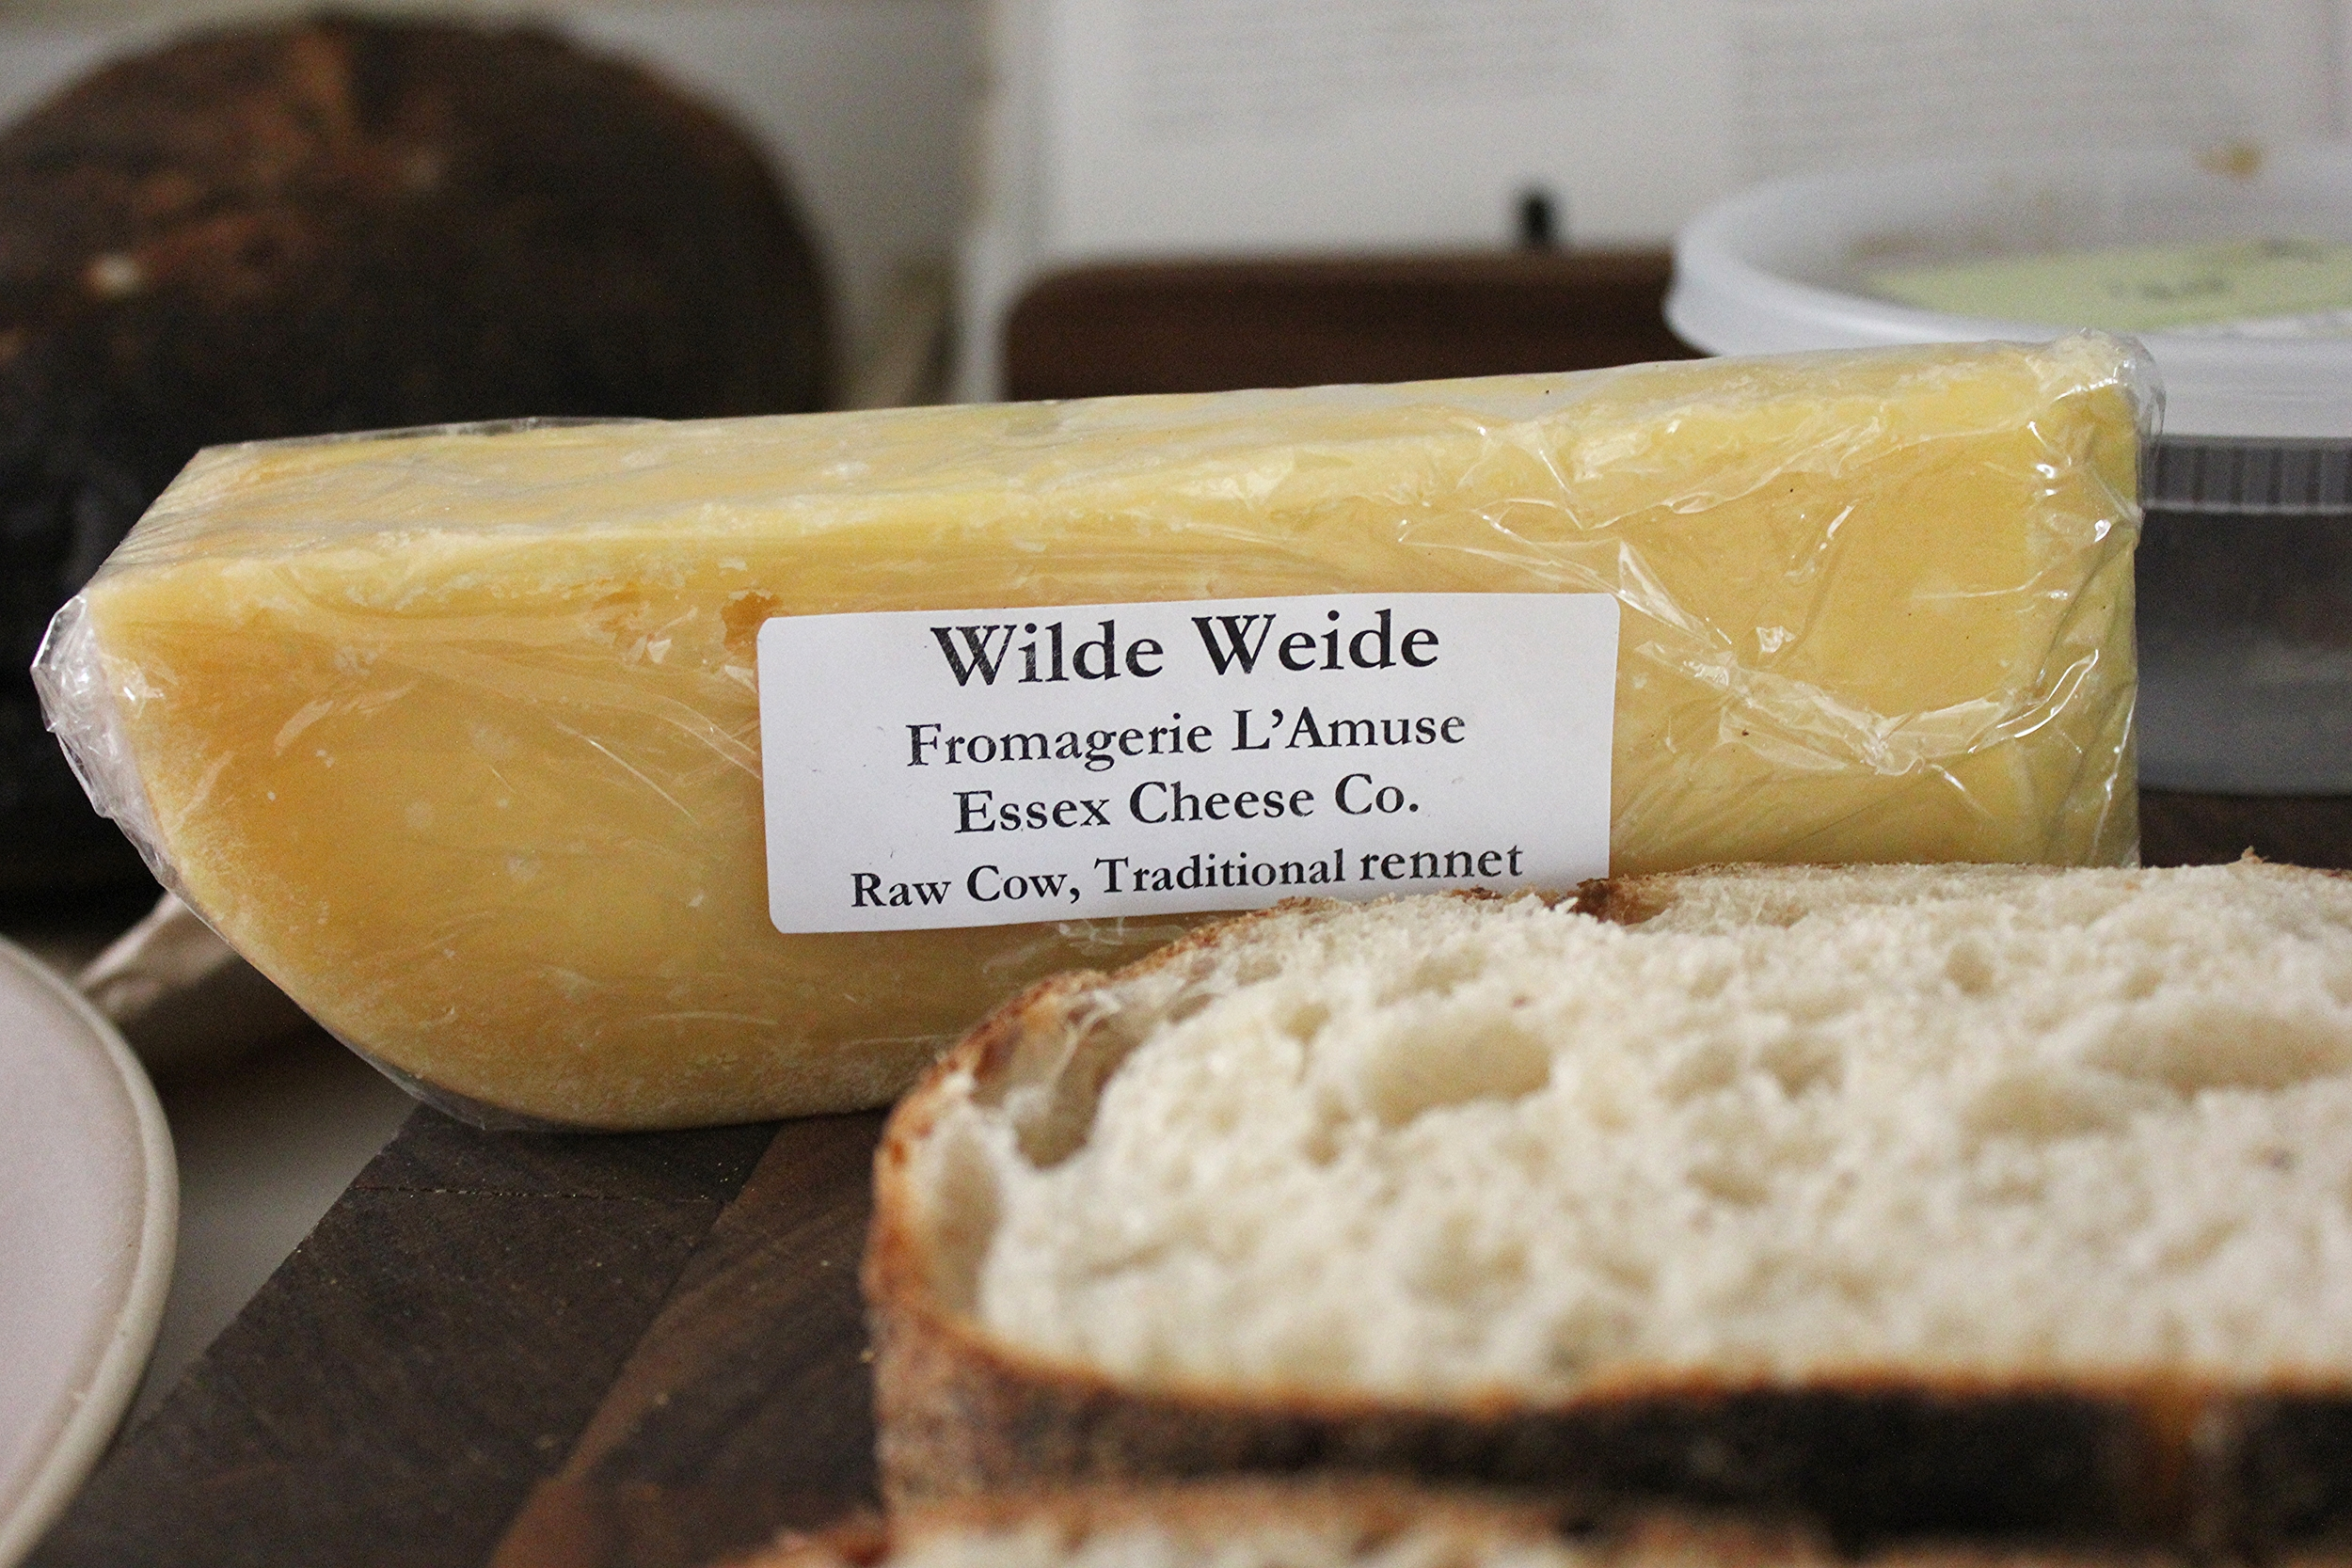 Cowgirl Creamery's Wilde Weide gouda, delicious! - Fancy Casual www.fancycasual.com